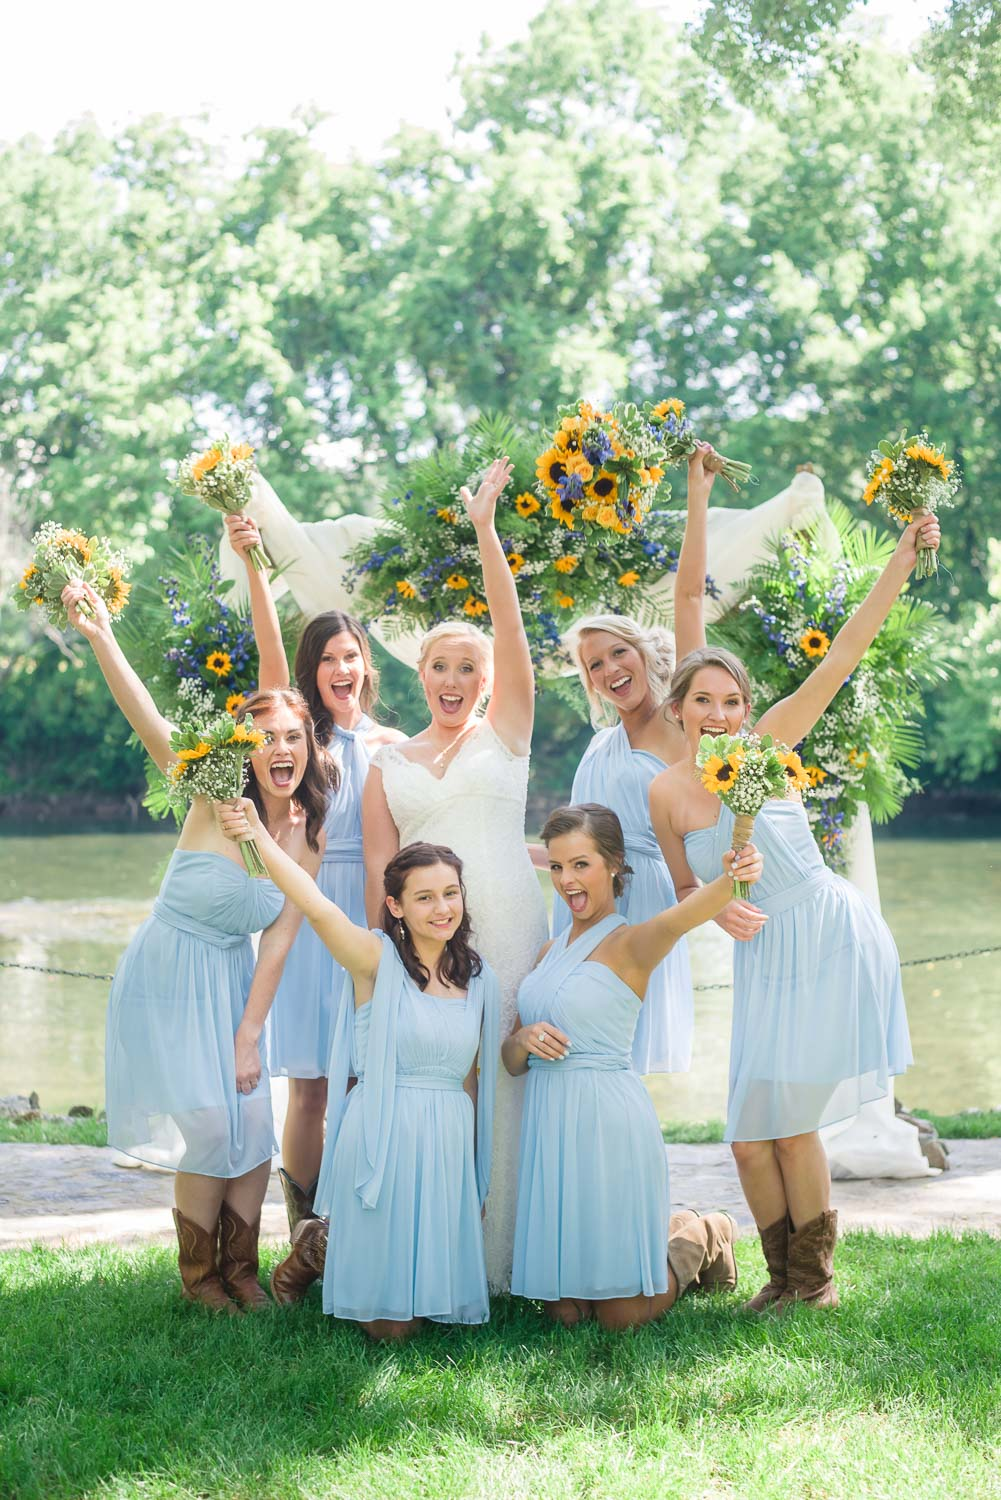 bride and bridesmaids in ice blue short dresses with sunflower bouquets